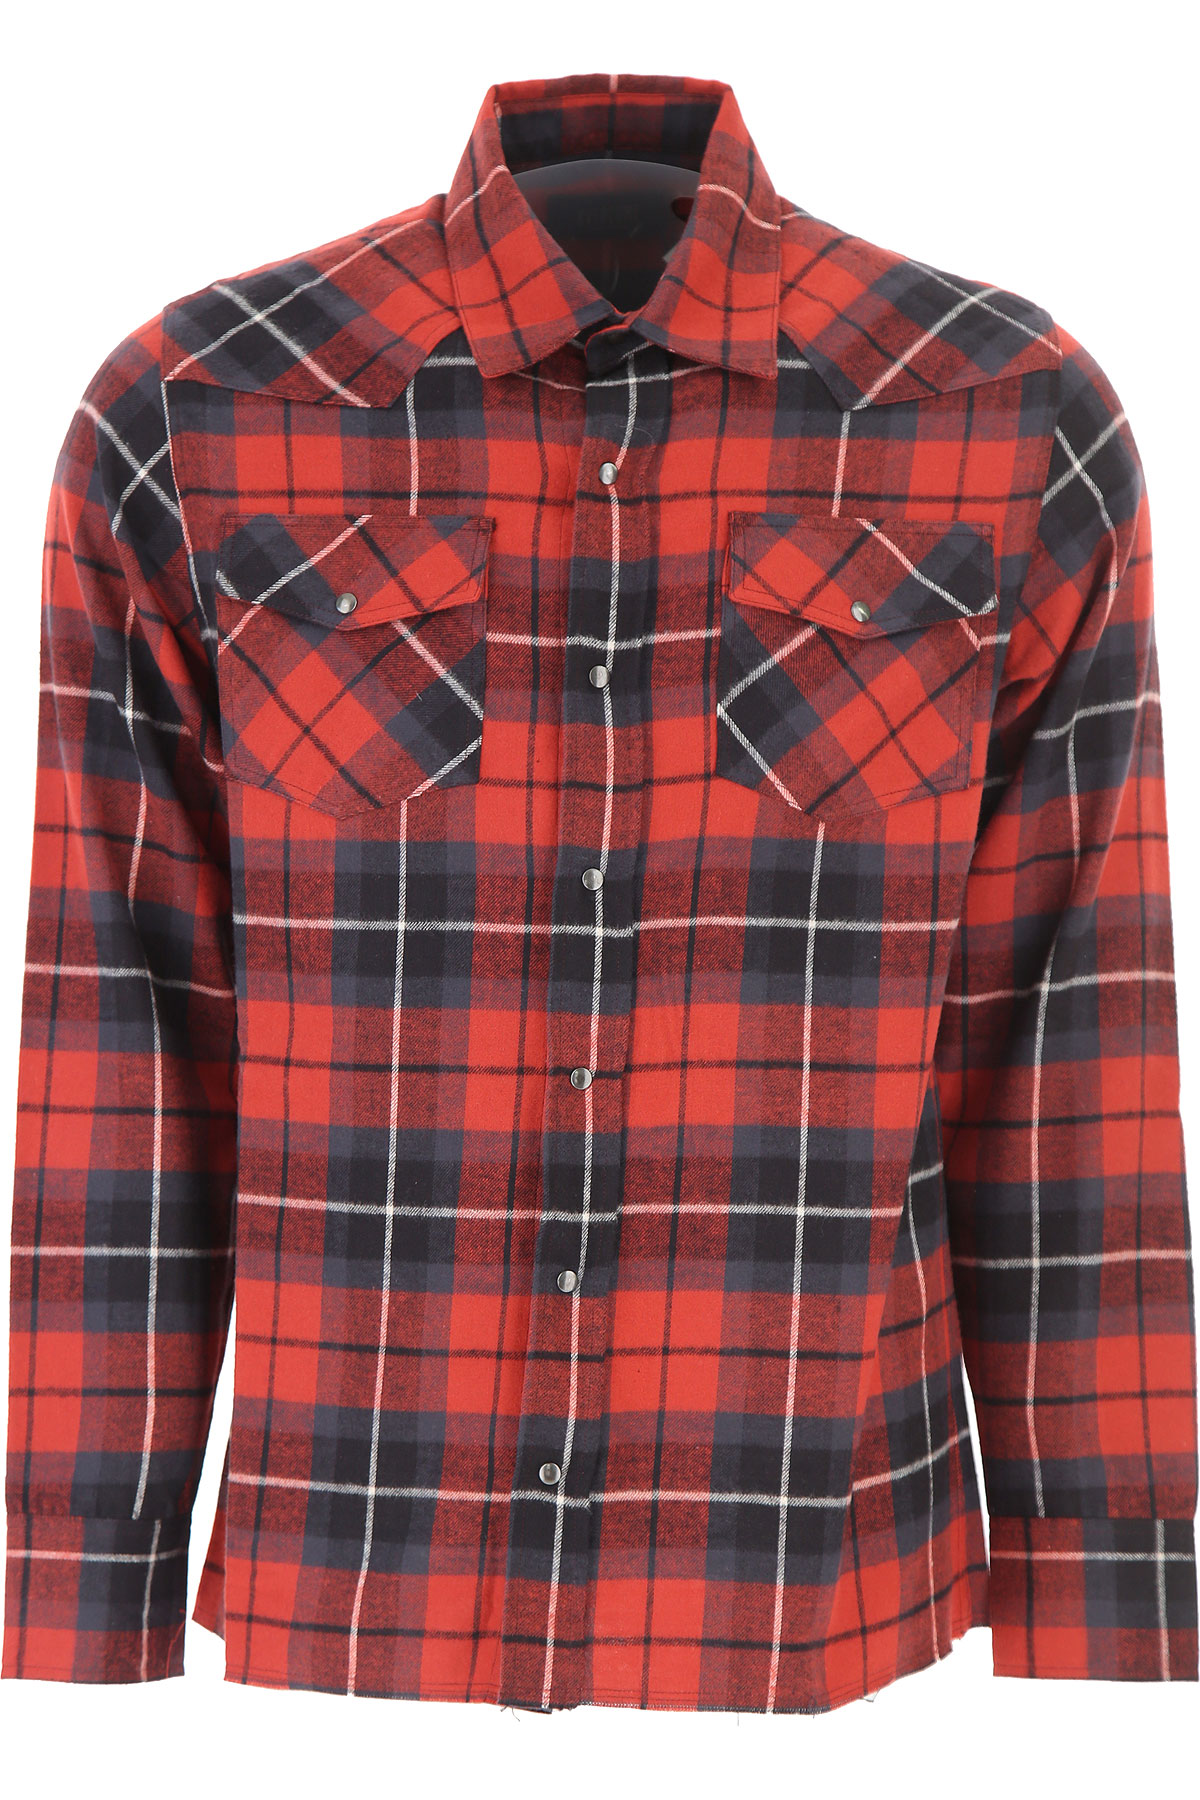 Image of Overcome Shirt for Men, Red, Cotton, 2017, 32 36